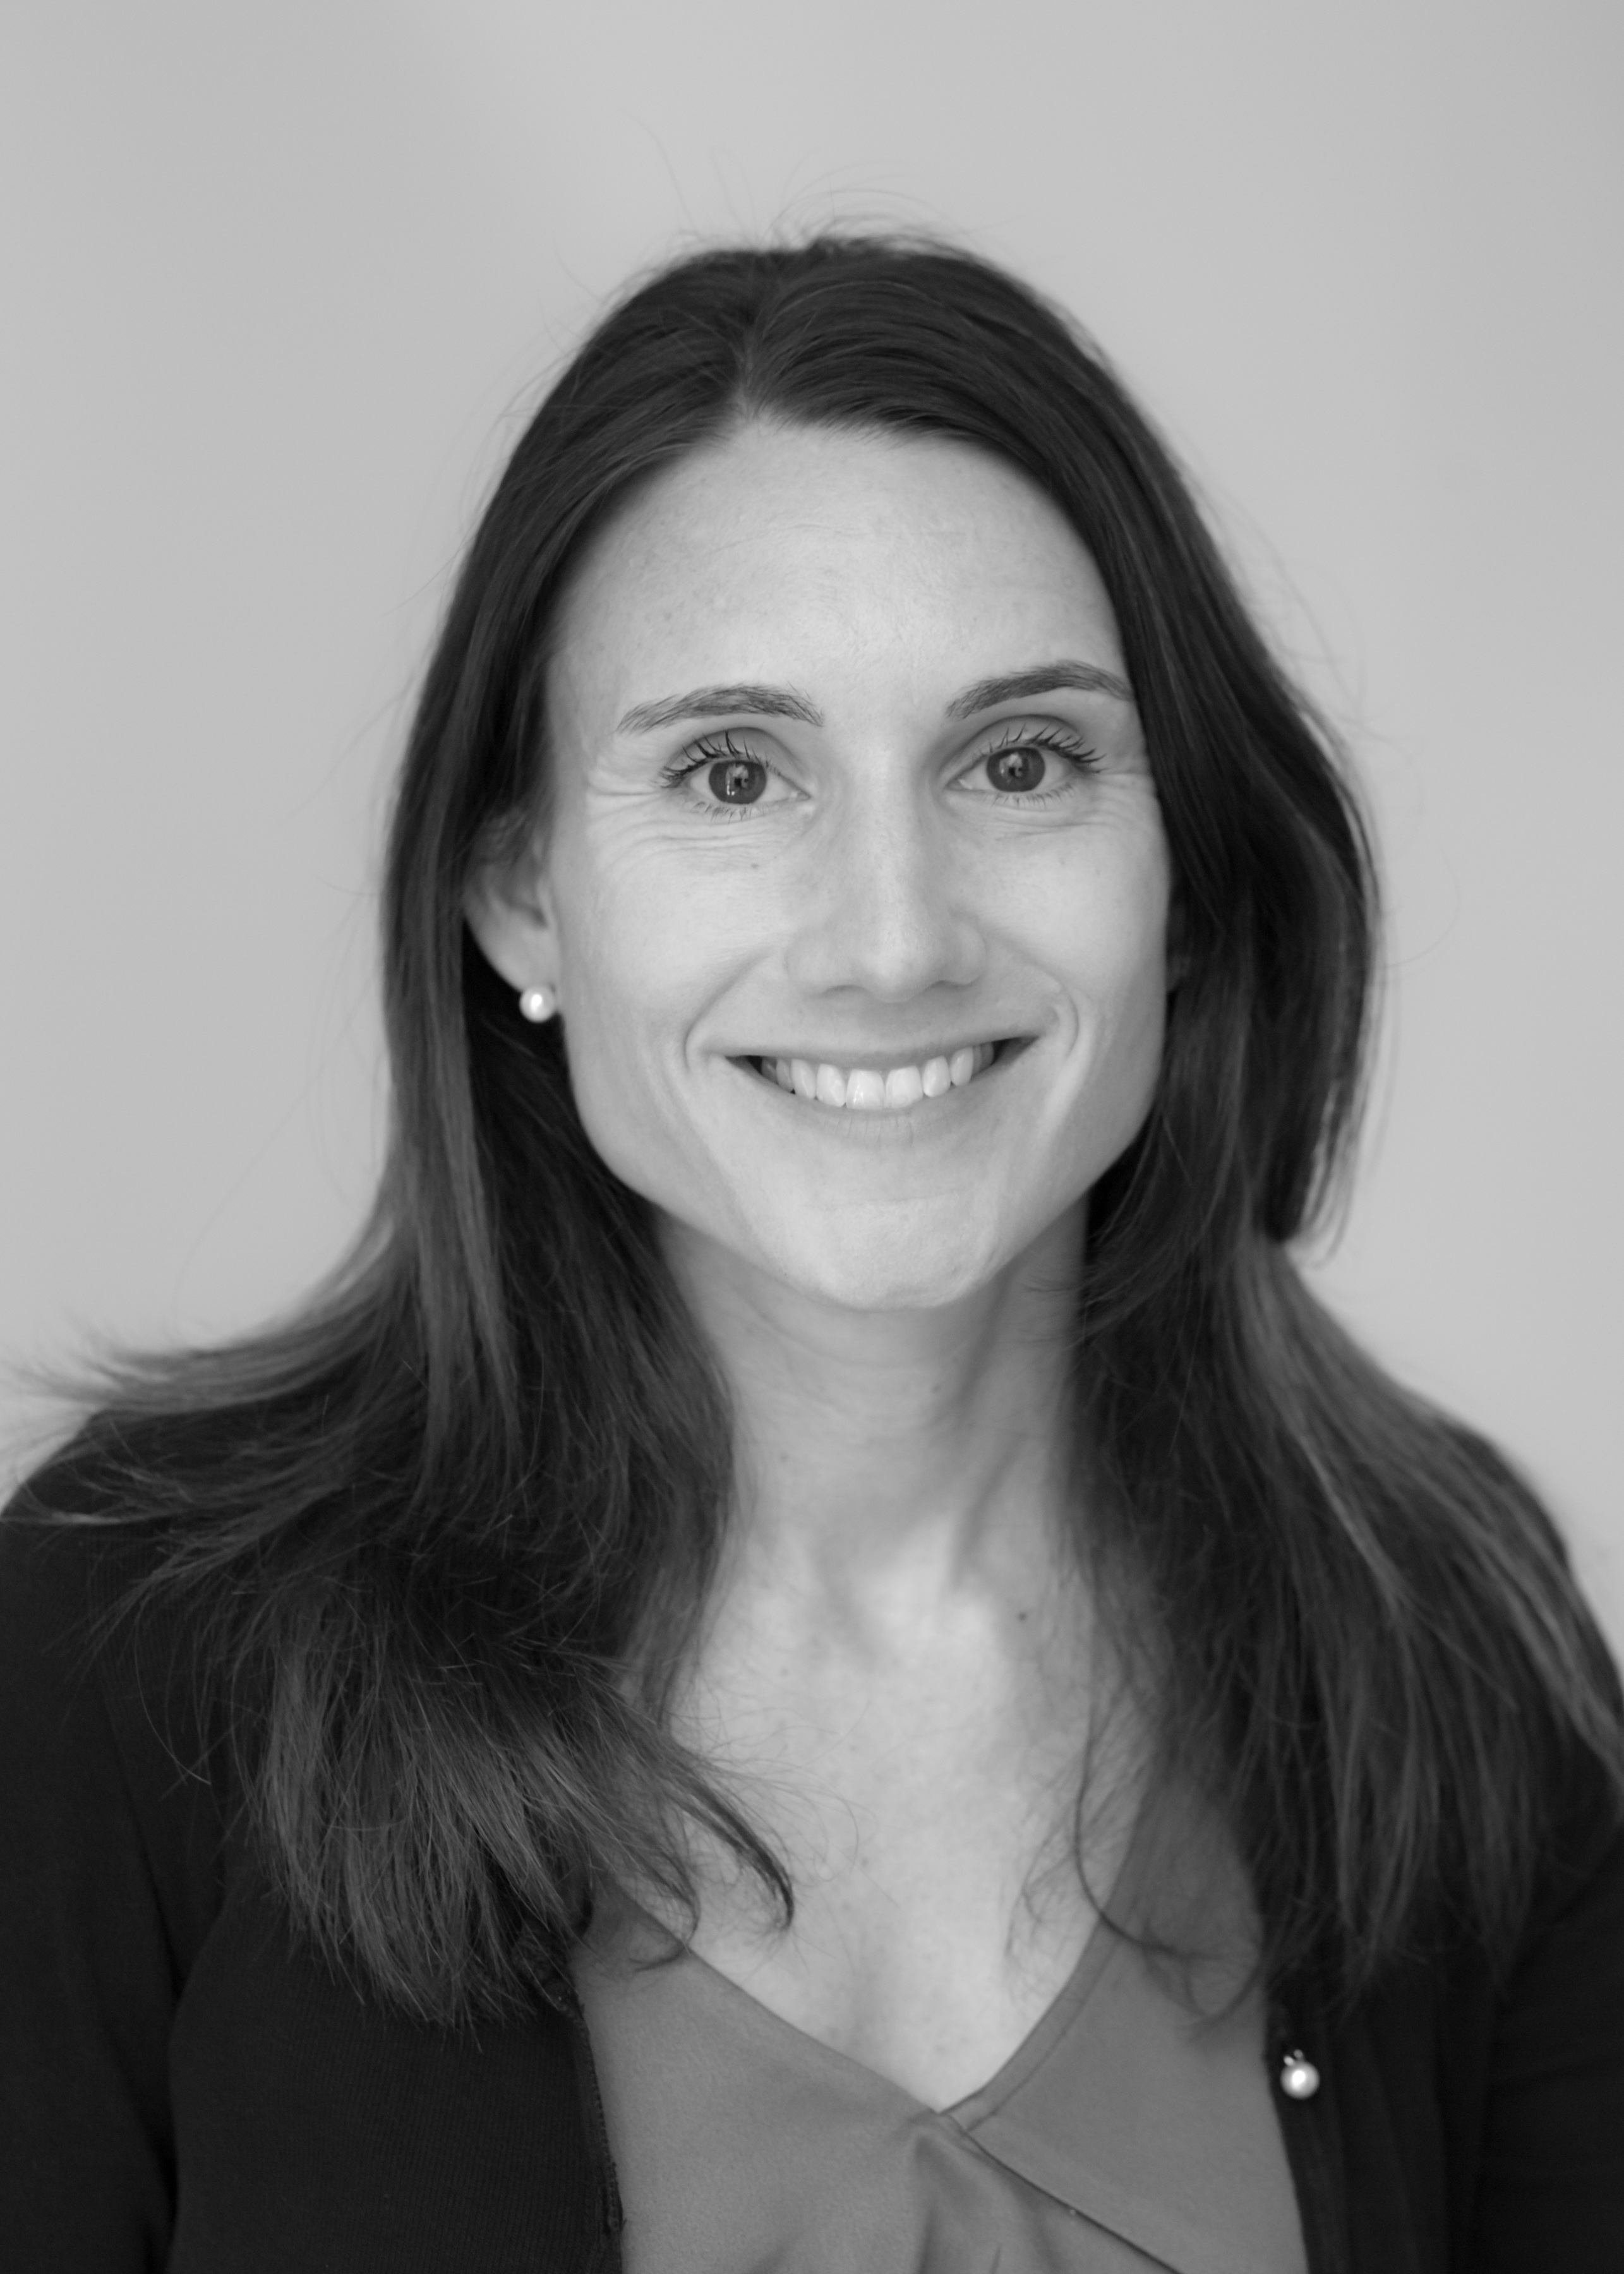 A black and white image of Miriam Kauer, Practice Manager at Ethical Investment Services.